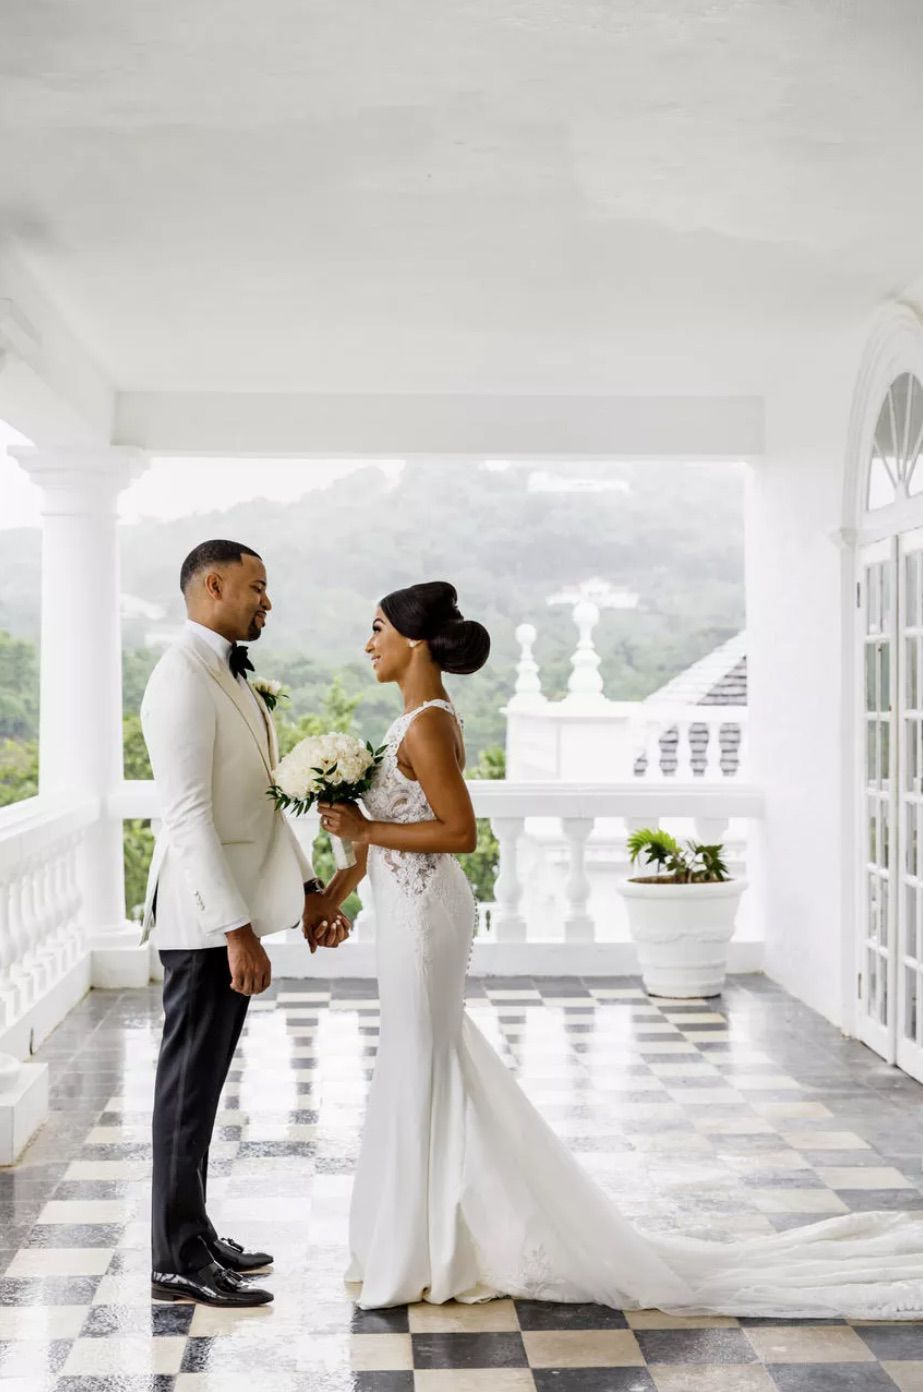 Newlyweds first look